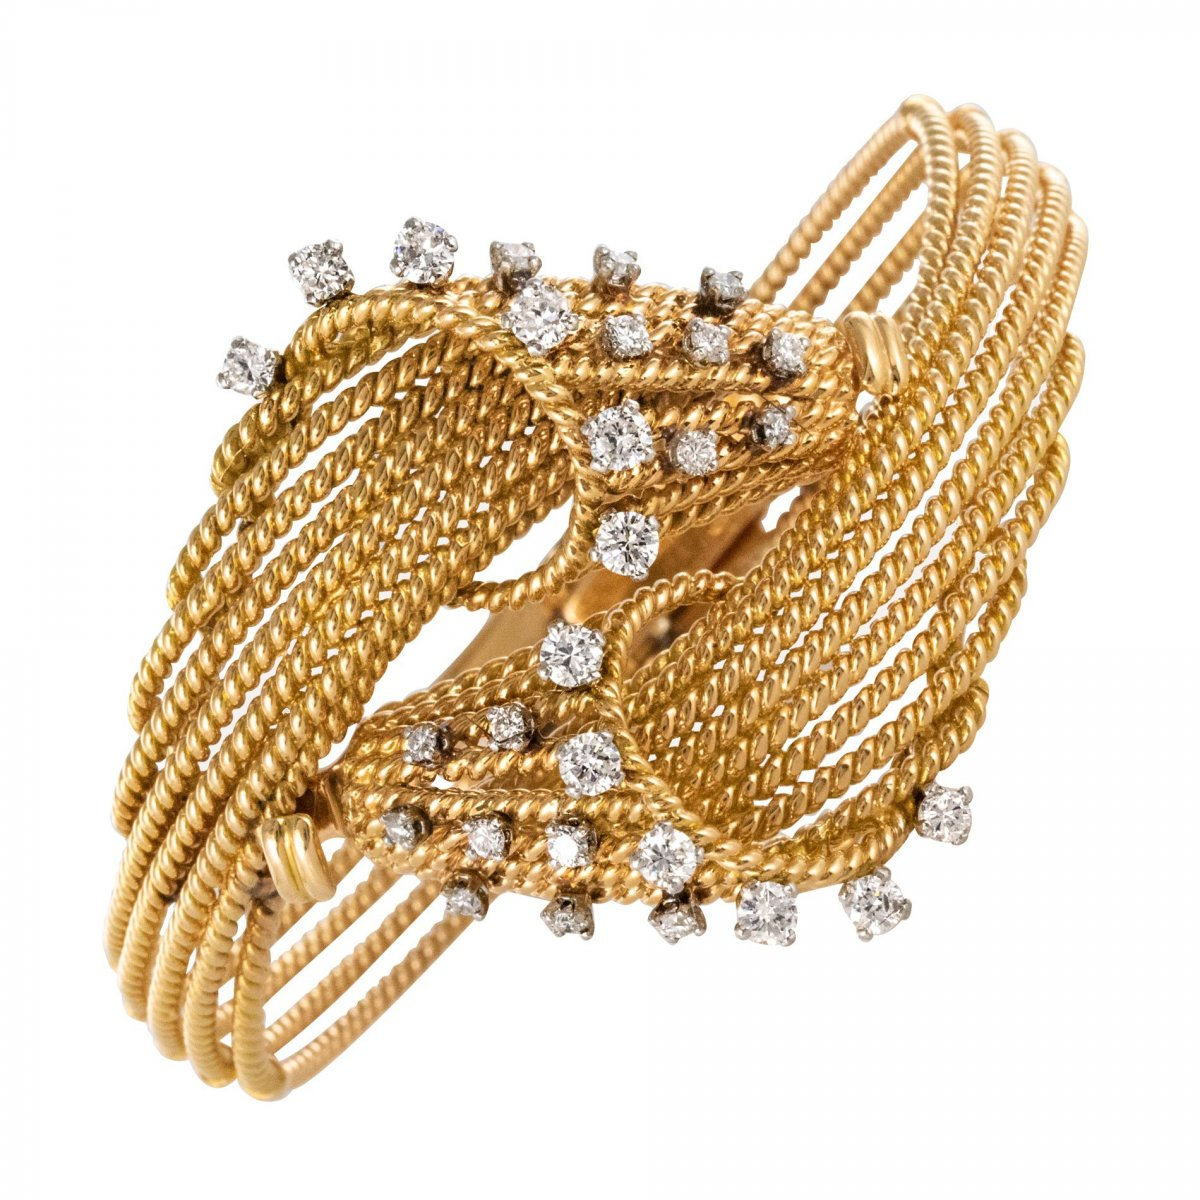 Fils d'Or And Diamonds Bracelet